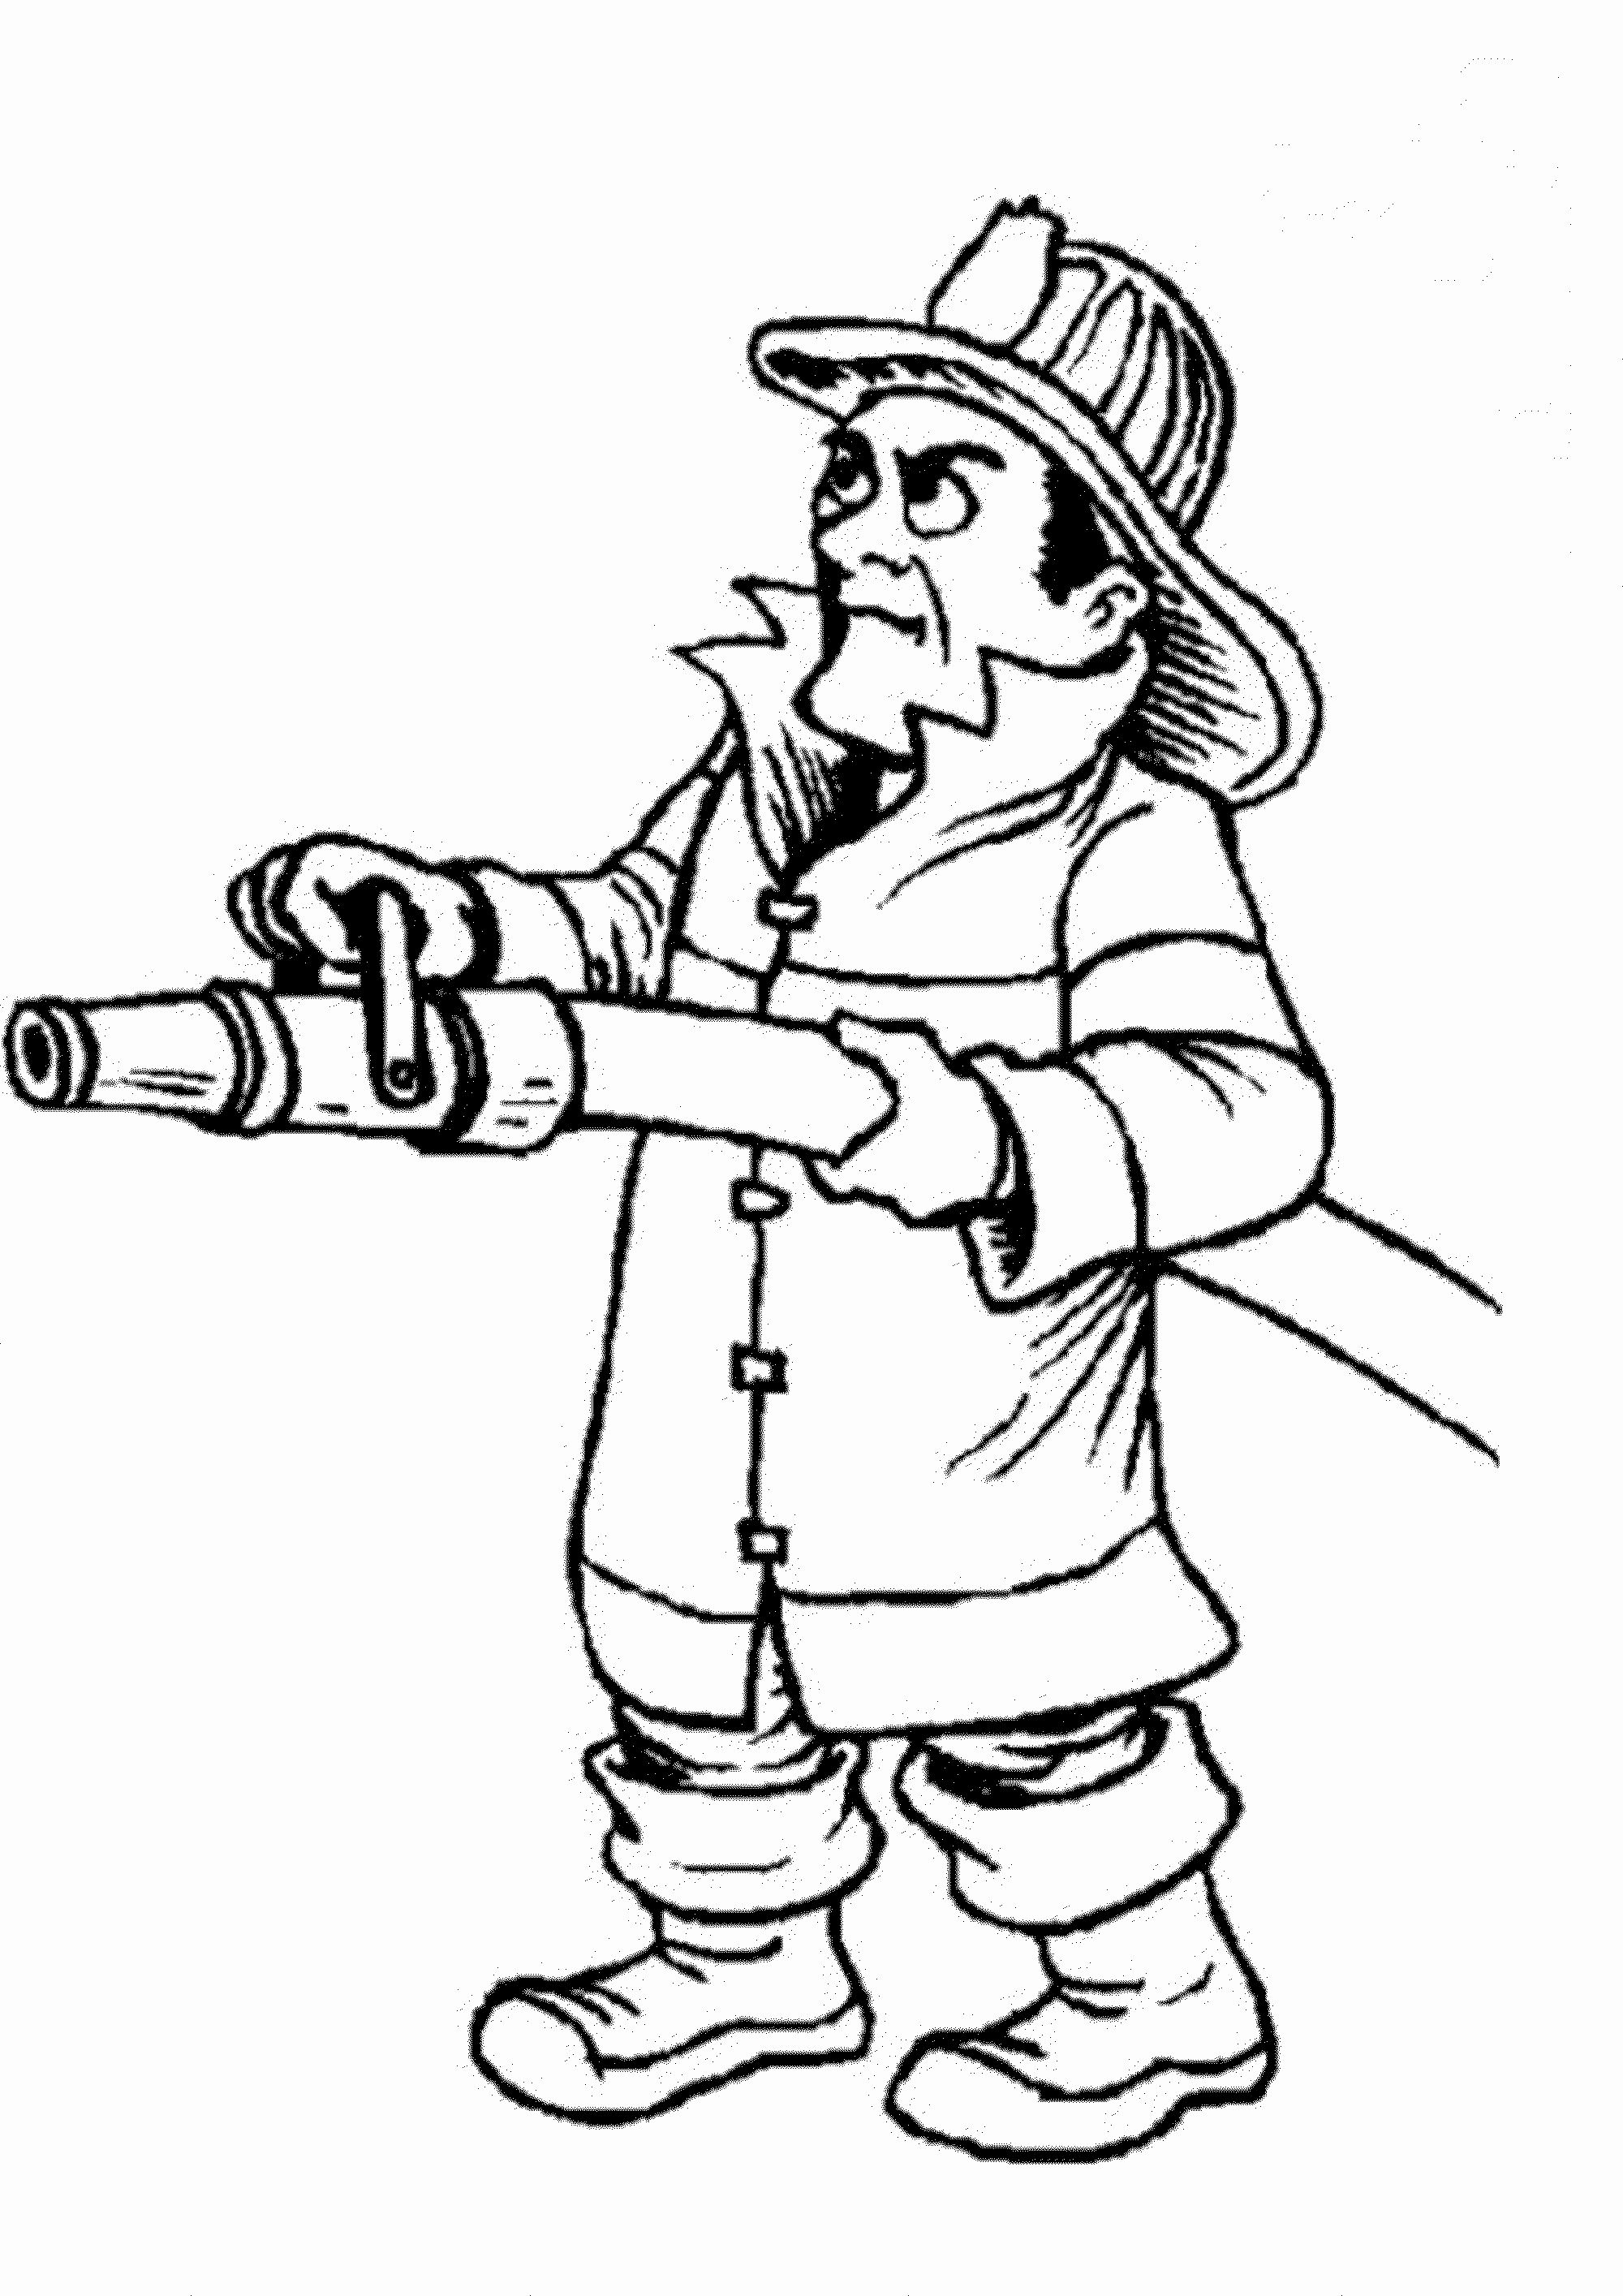 Fire Fighter Coloring Page Unique Print & Download ...